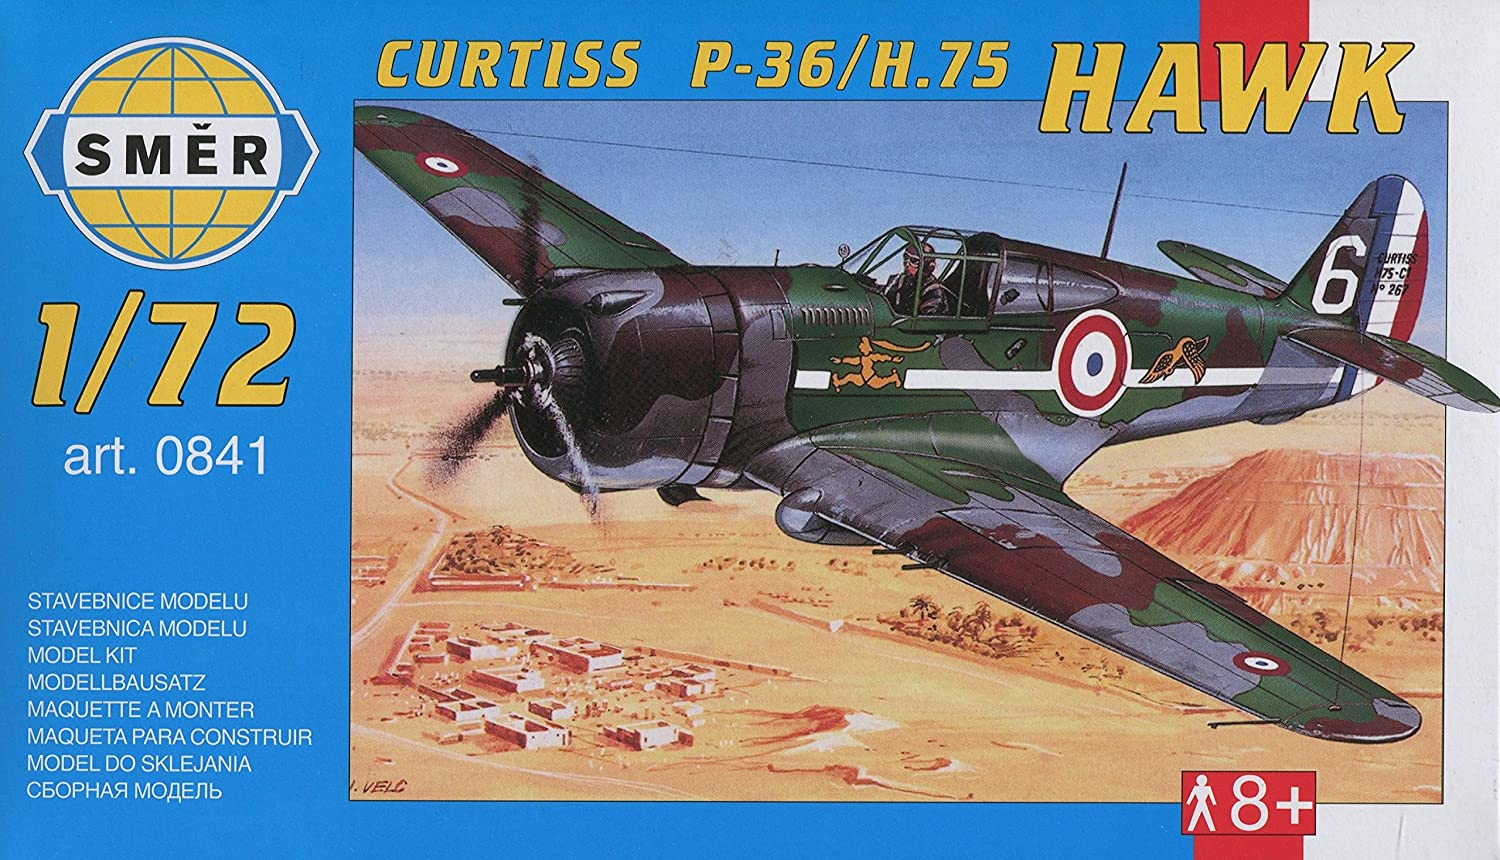 Smer Curtiss P-36 / H.75 Hawk in USAAF and French (1/72 Model kit, 0841)